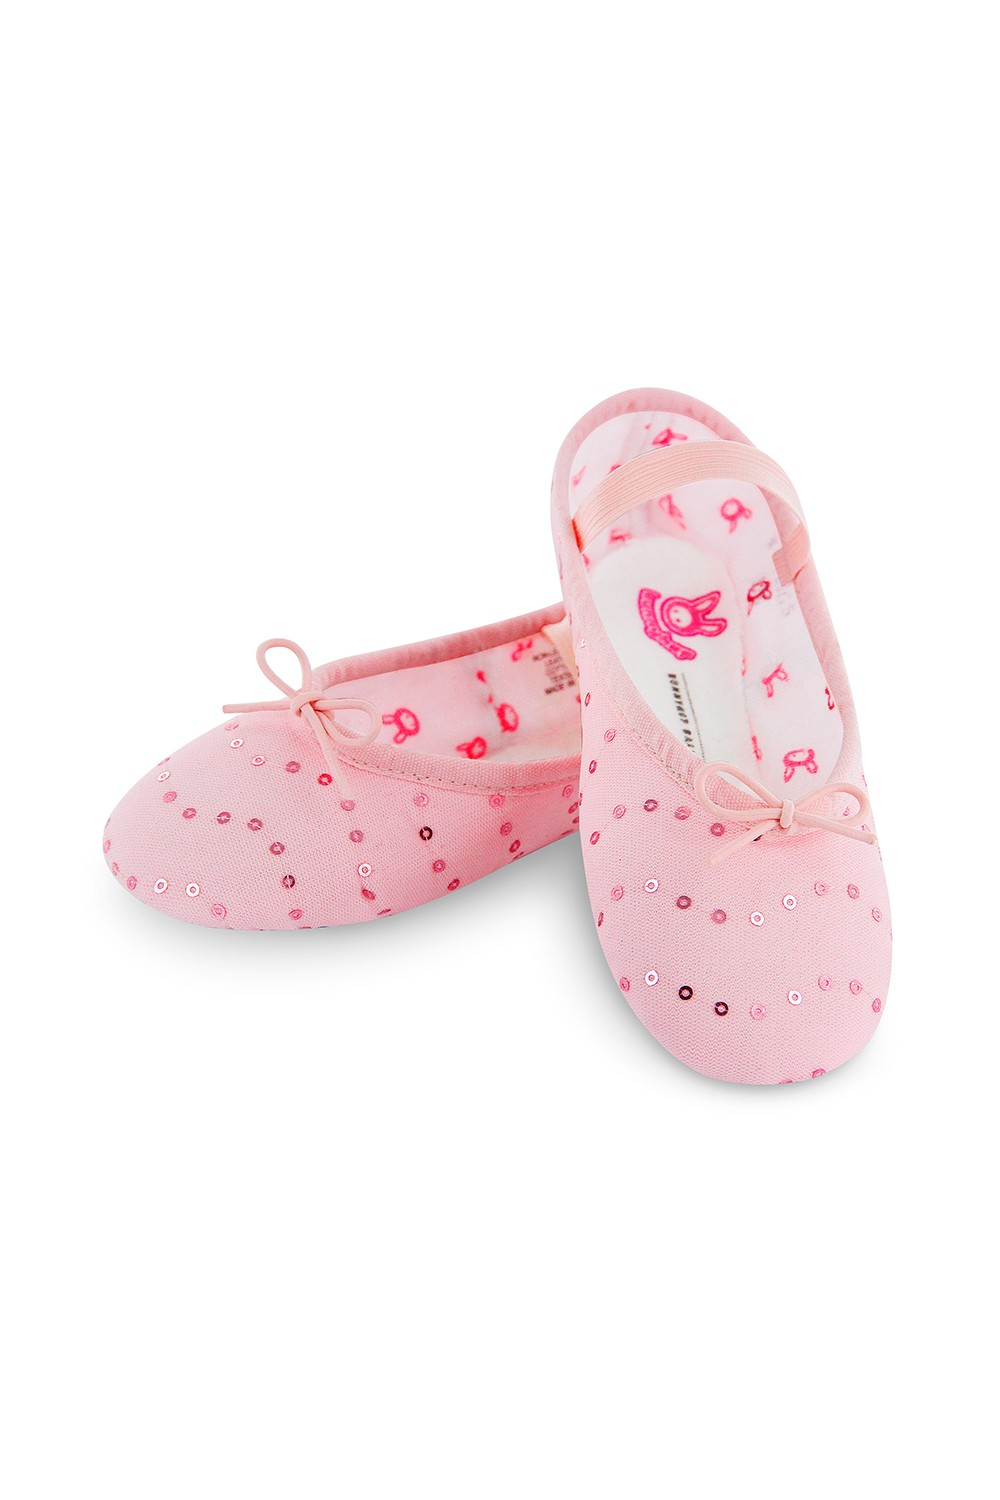 Sequin Ballet Shoe Girl's Ballet Shoes